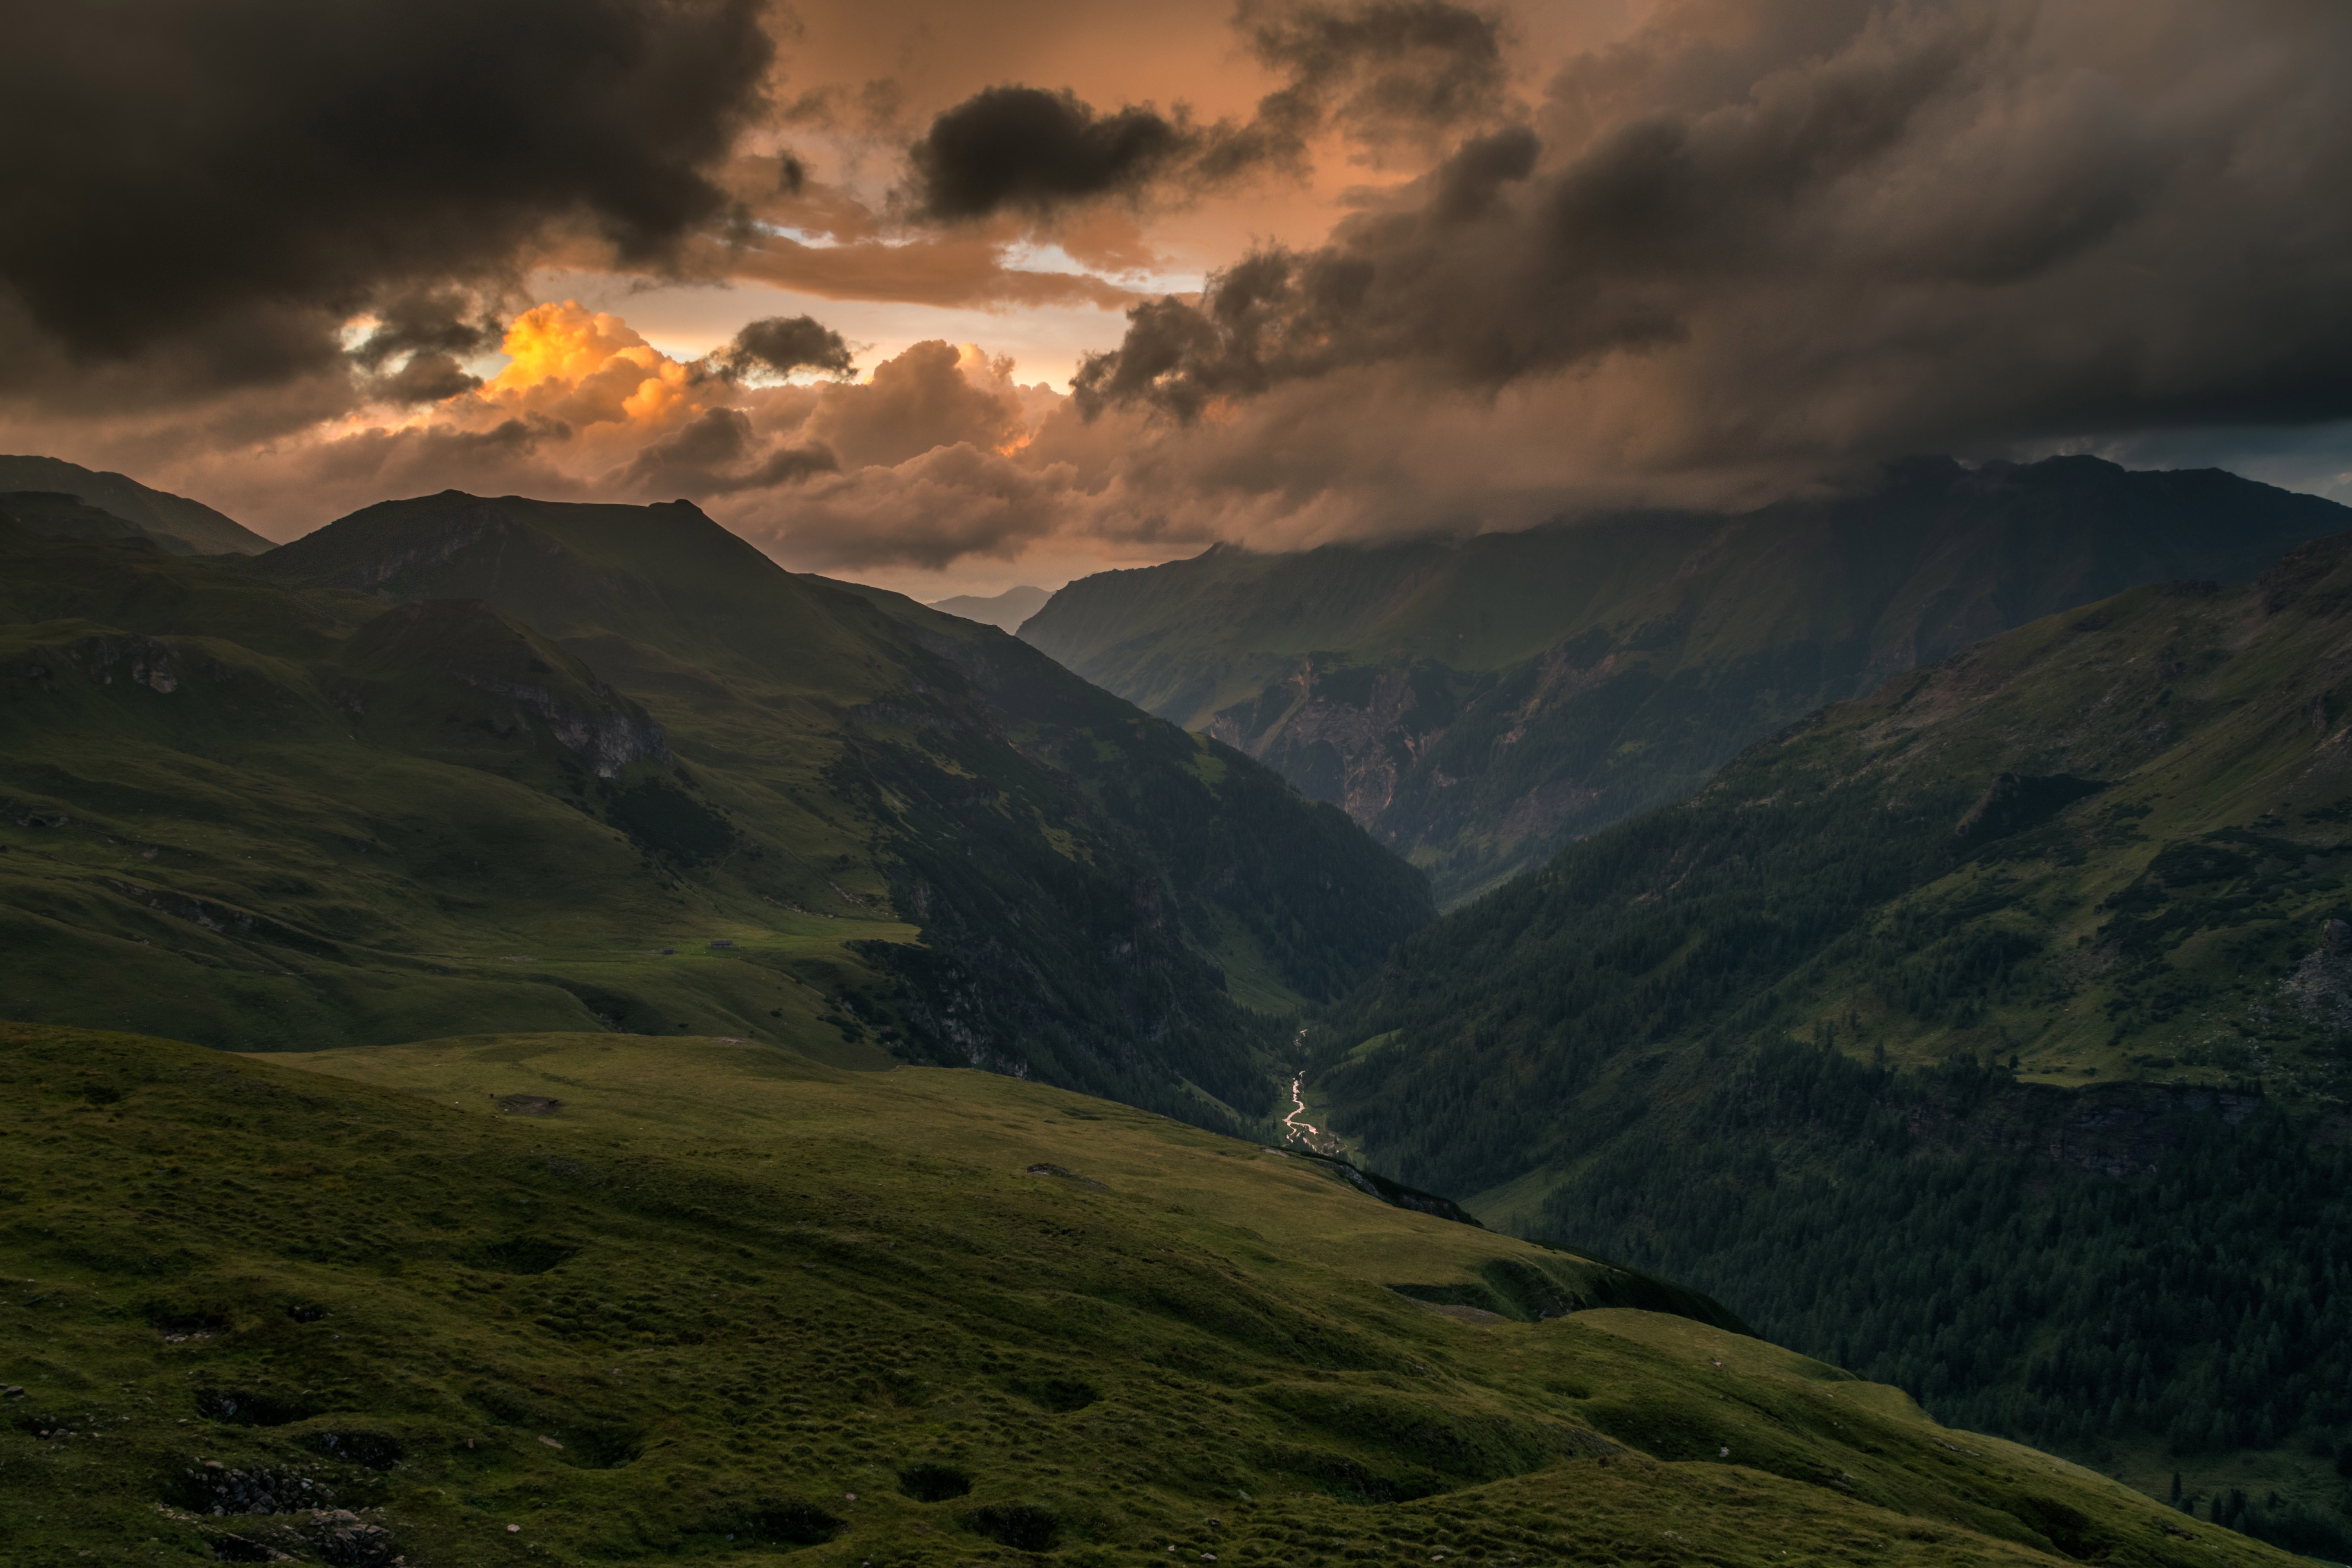 red clouds after sunset in the hills landscape in austria image - free stock photo